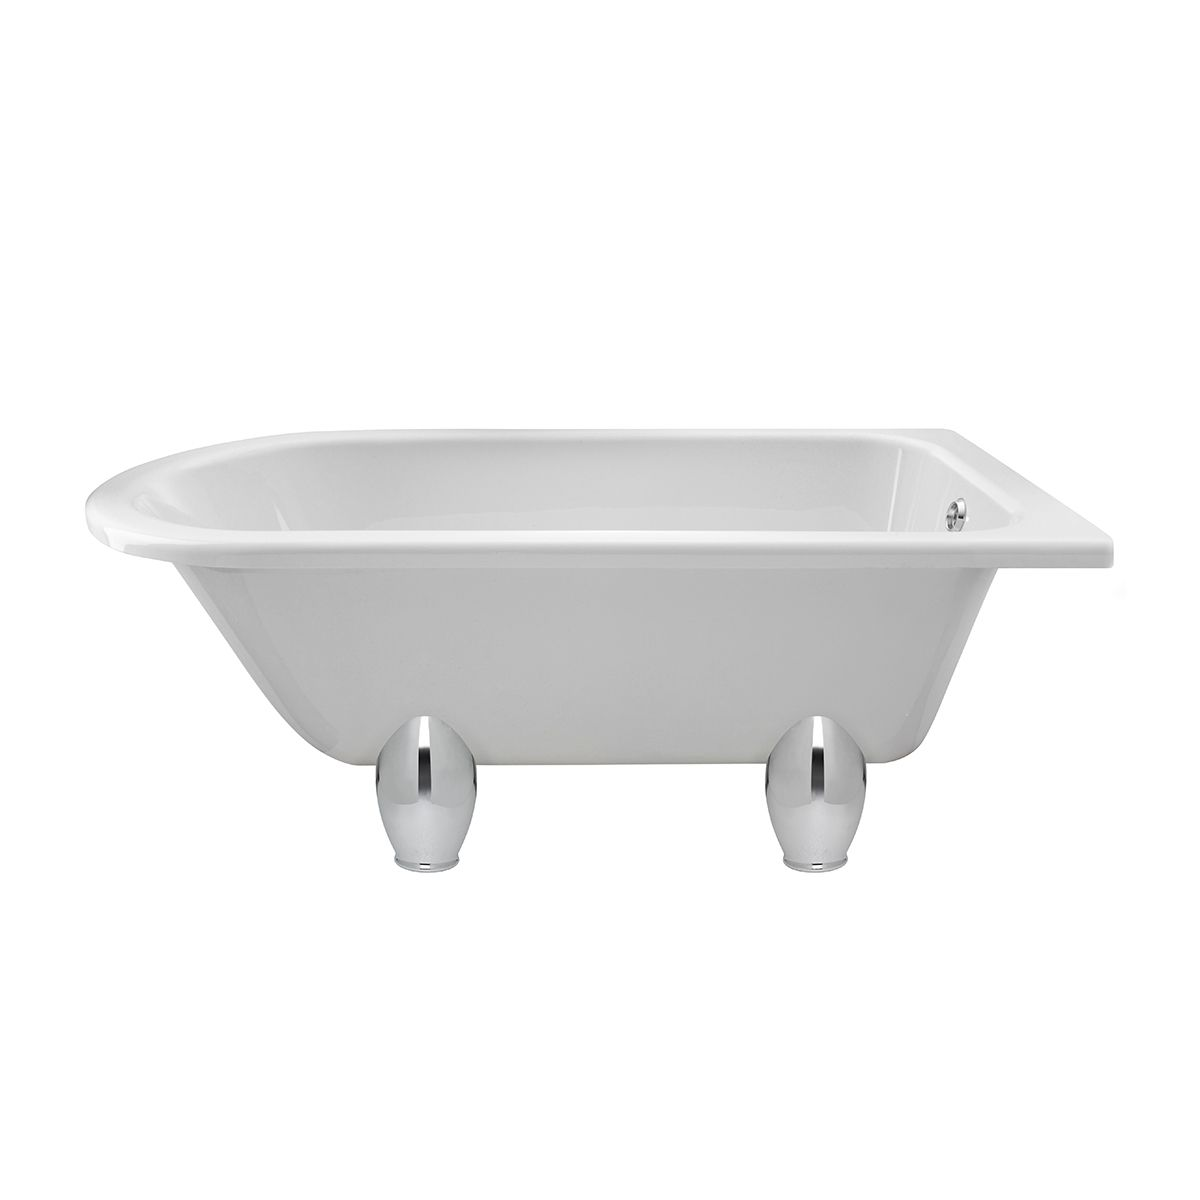 Winterburn Roll Top Bath with Deacon Feet